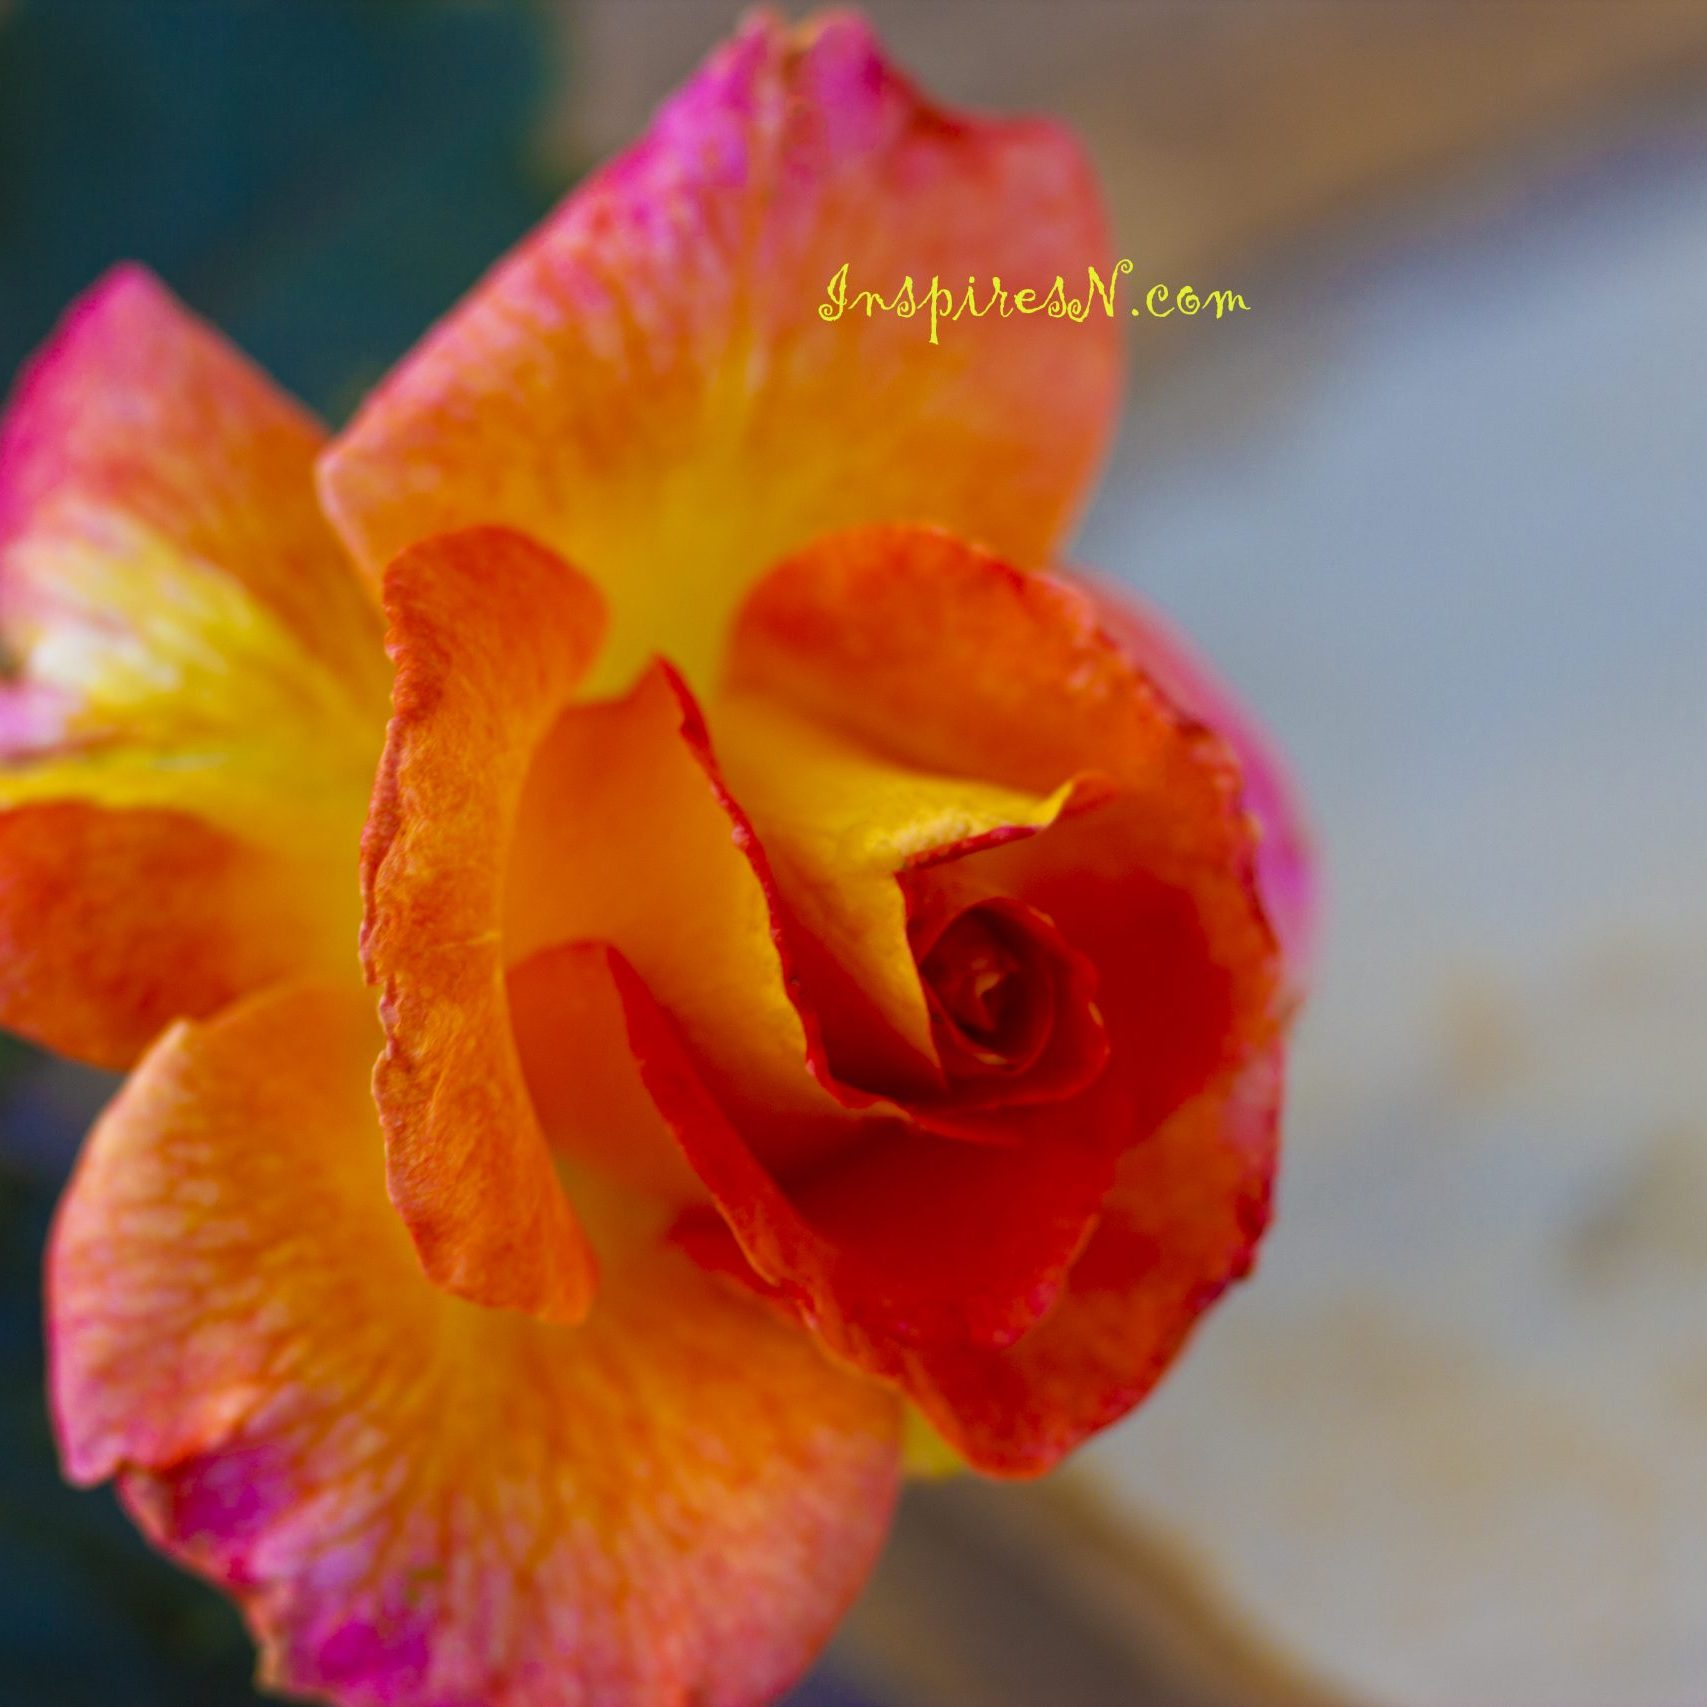 Rose with Pretty shades of yellow orange and pink